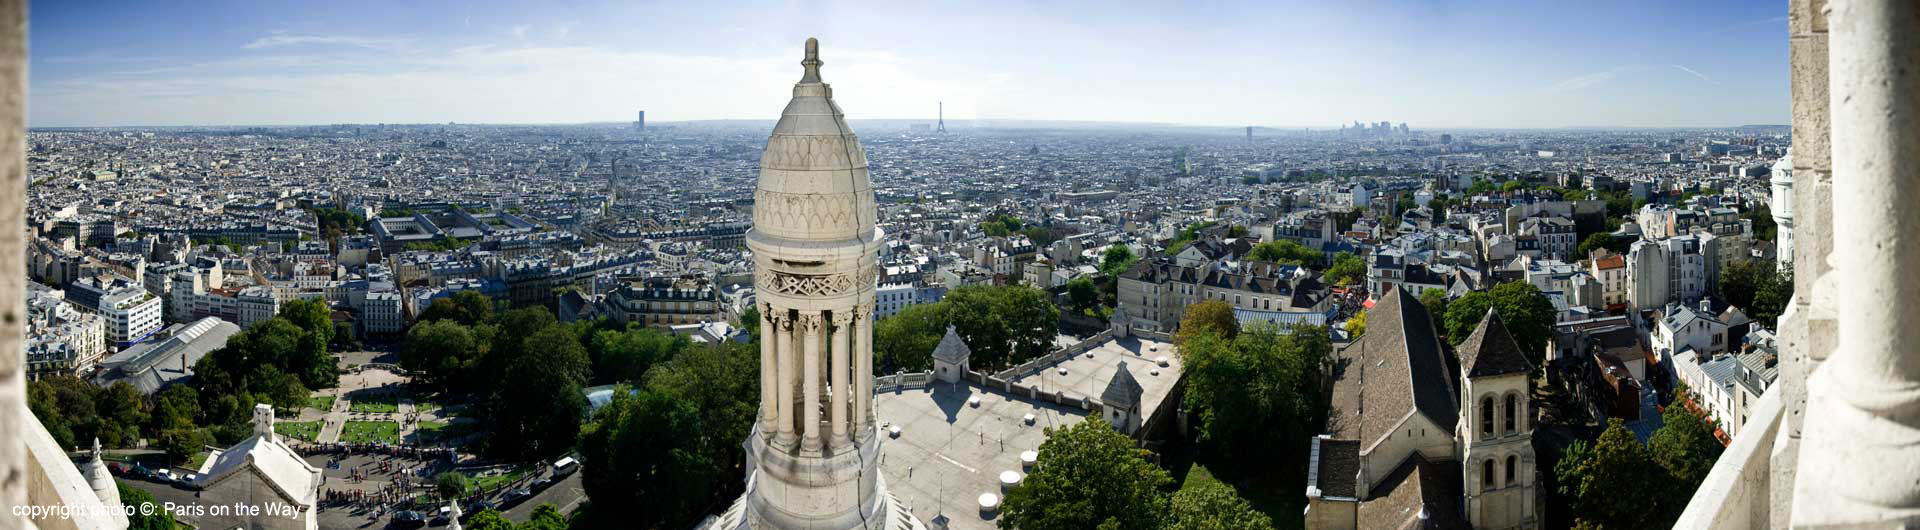 VIEW OF PARIS FROM THE SACRE COEUR BASILICA